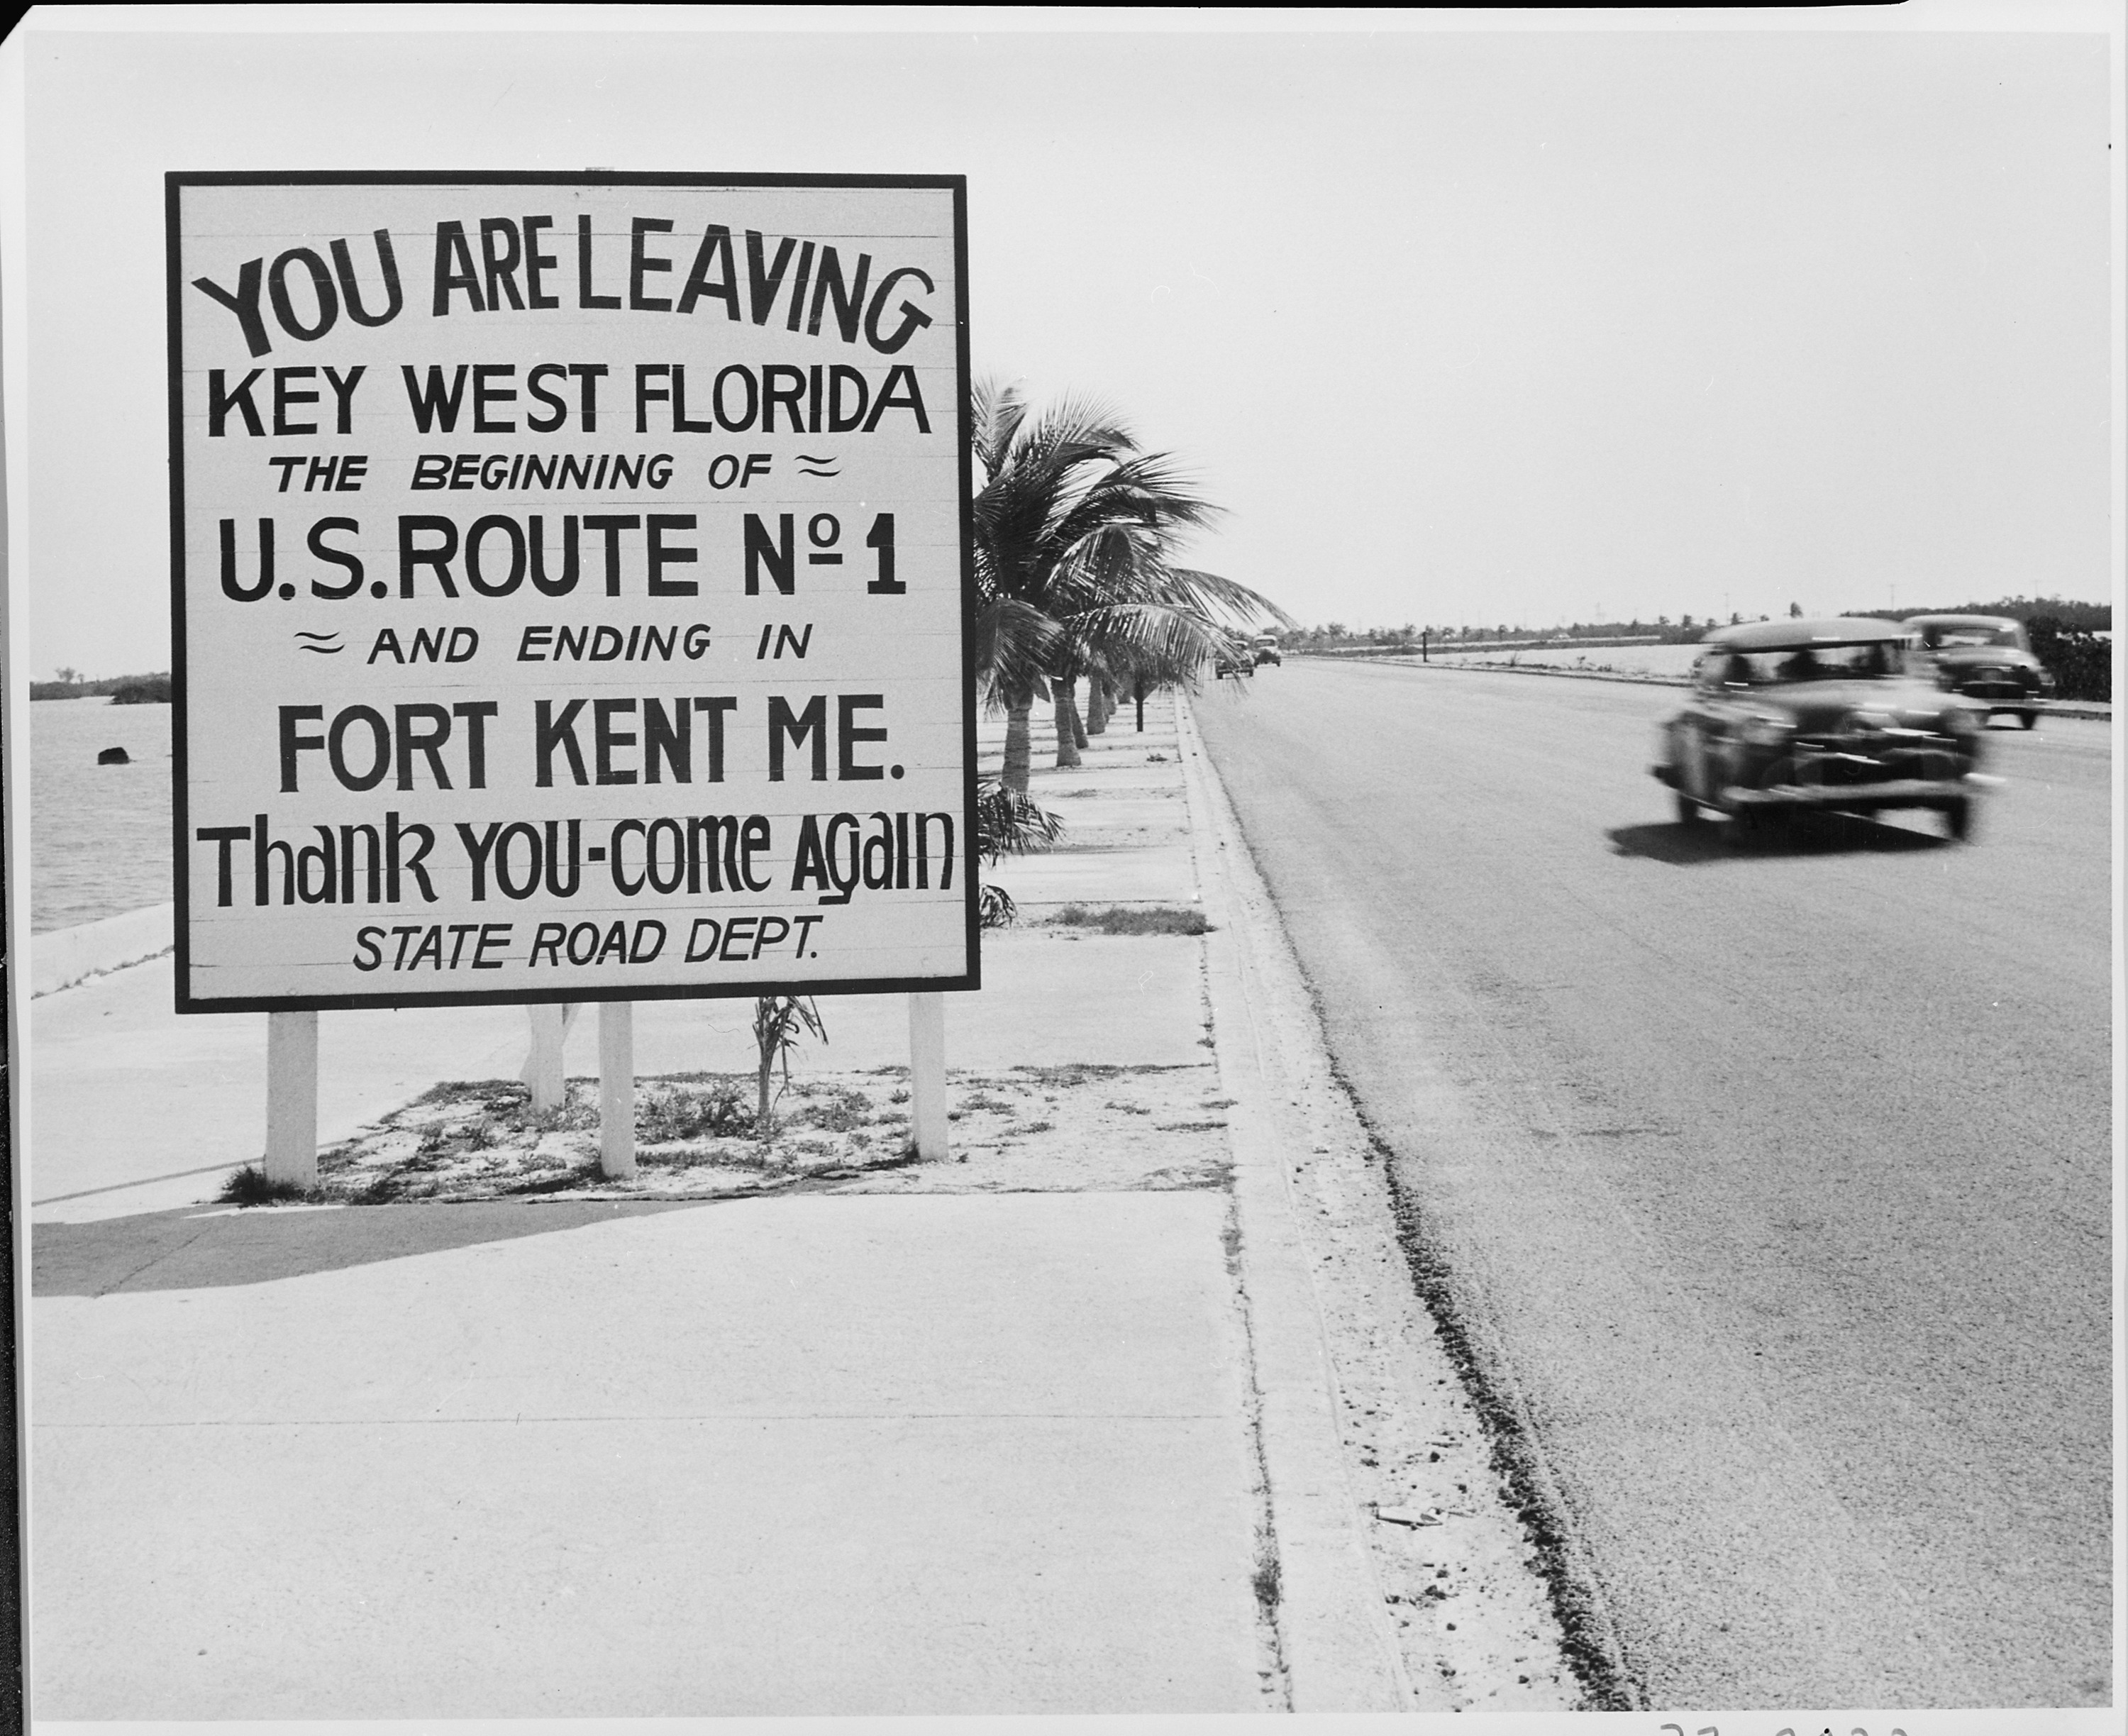 1950s Road Signs